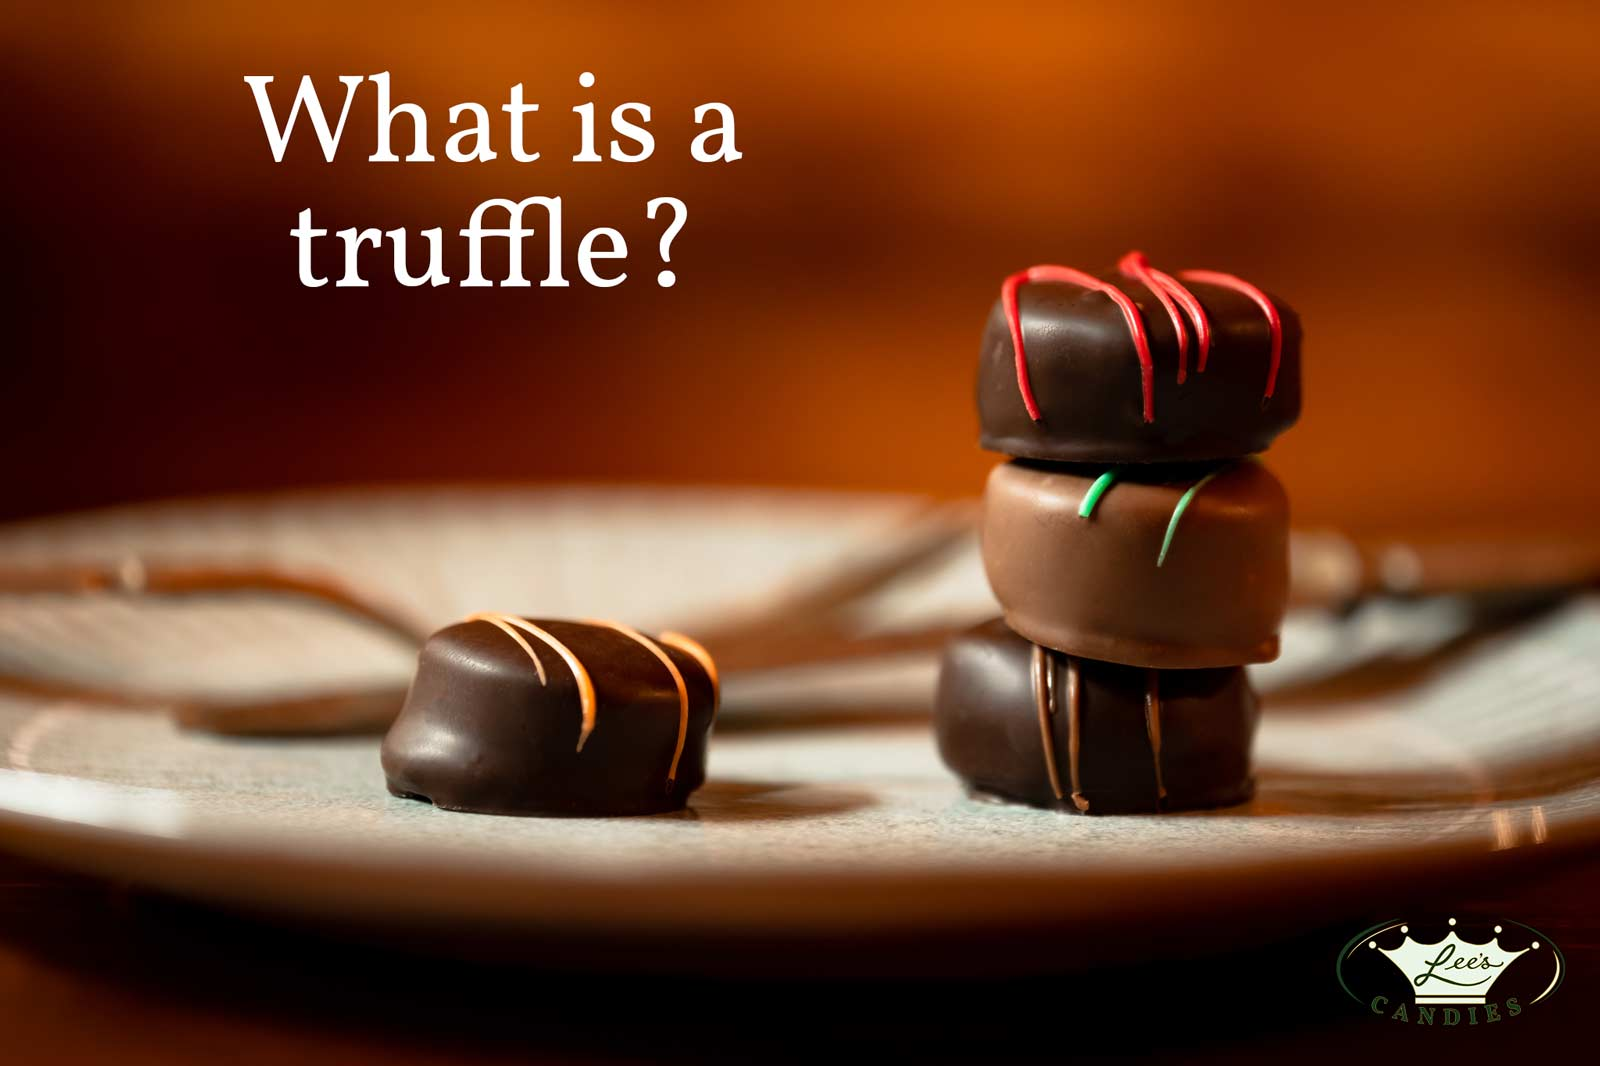 What is a Chocolate Truffle?